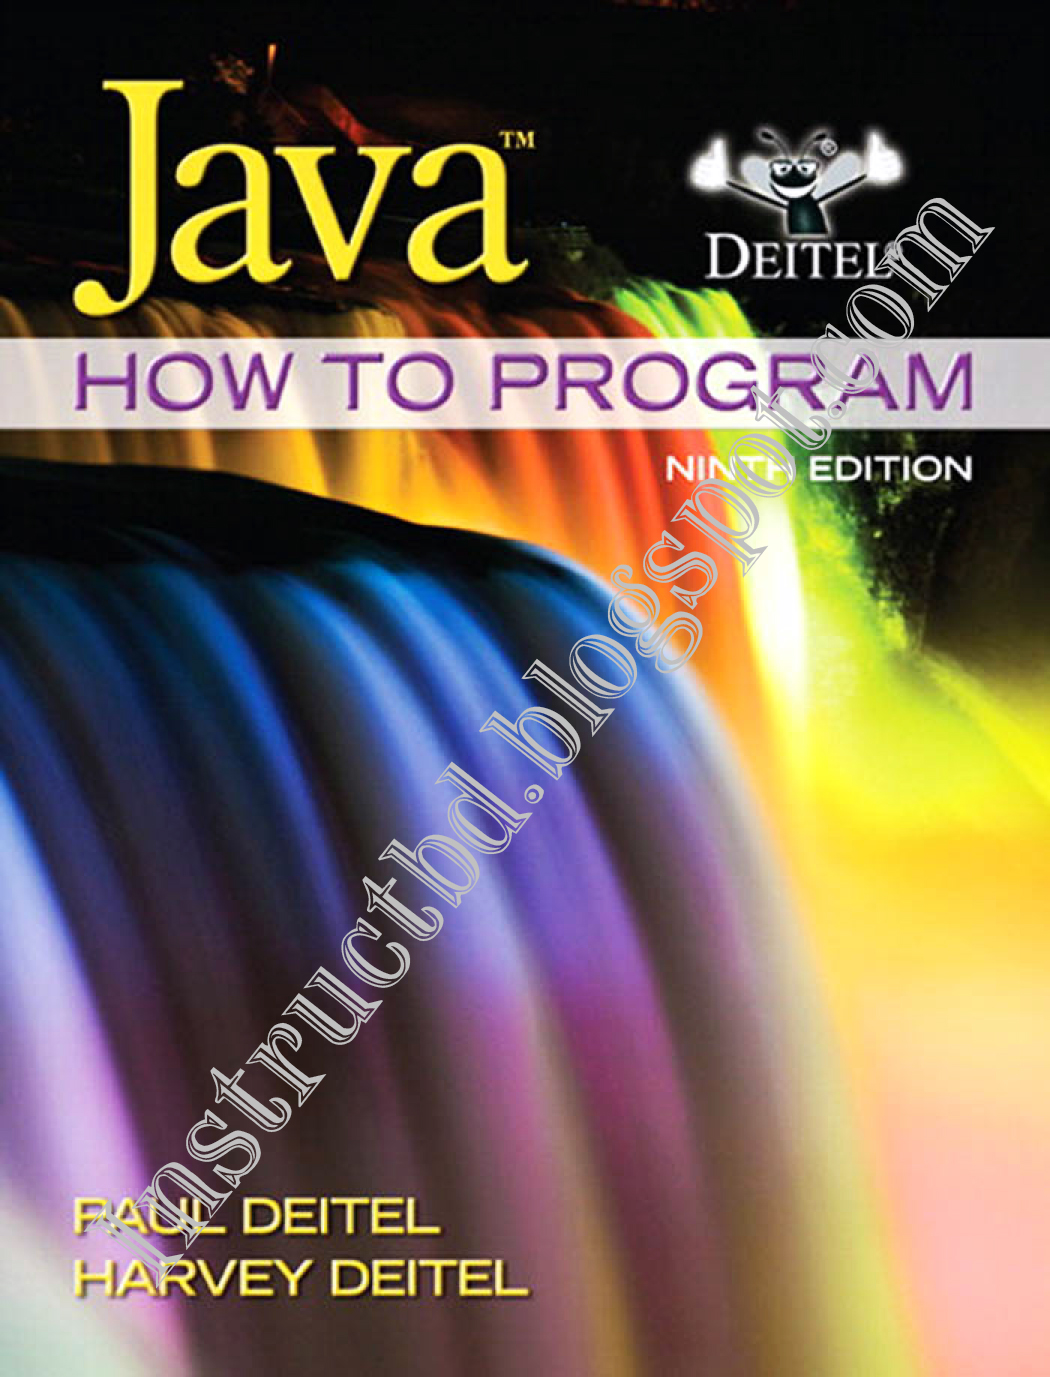 Java: How to Program, 9th Edition by Deitel P.J., Deitel H.M.